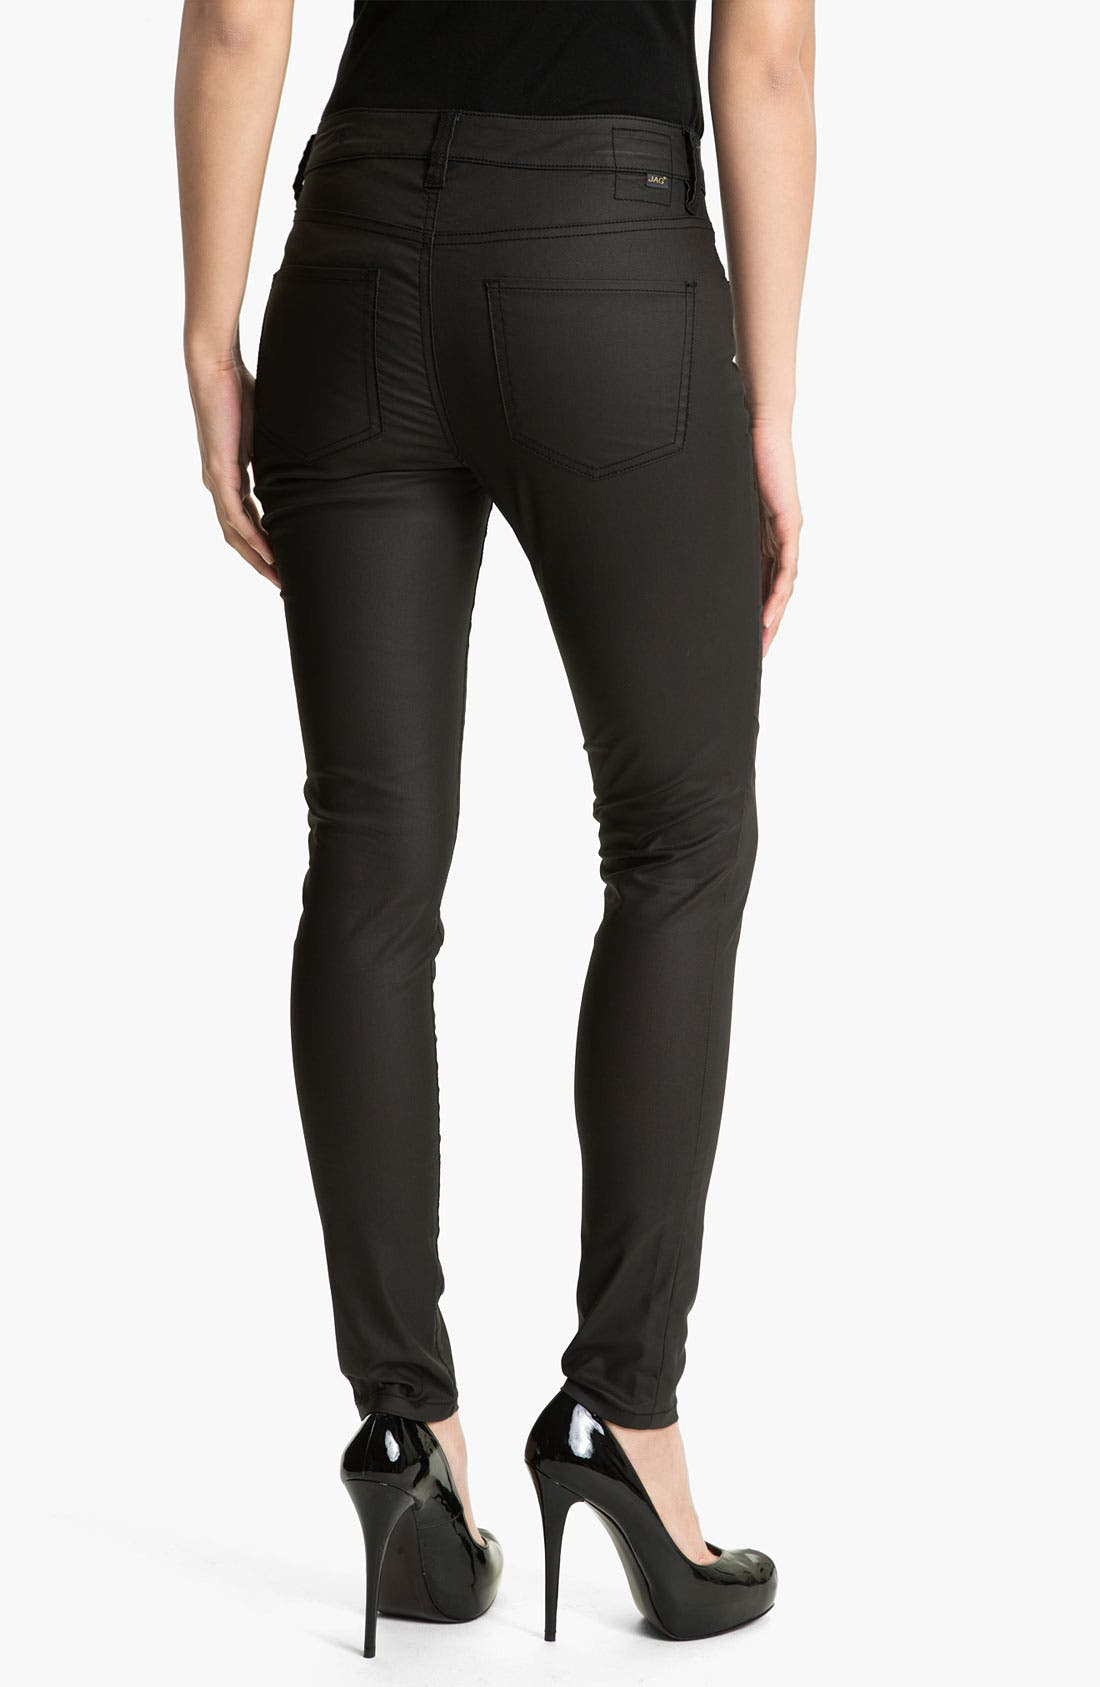 Alternate Image 2  - Jag Jeans 'Chloe' Faux Leather Pants (Petite)